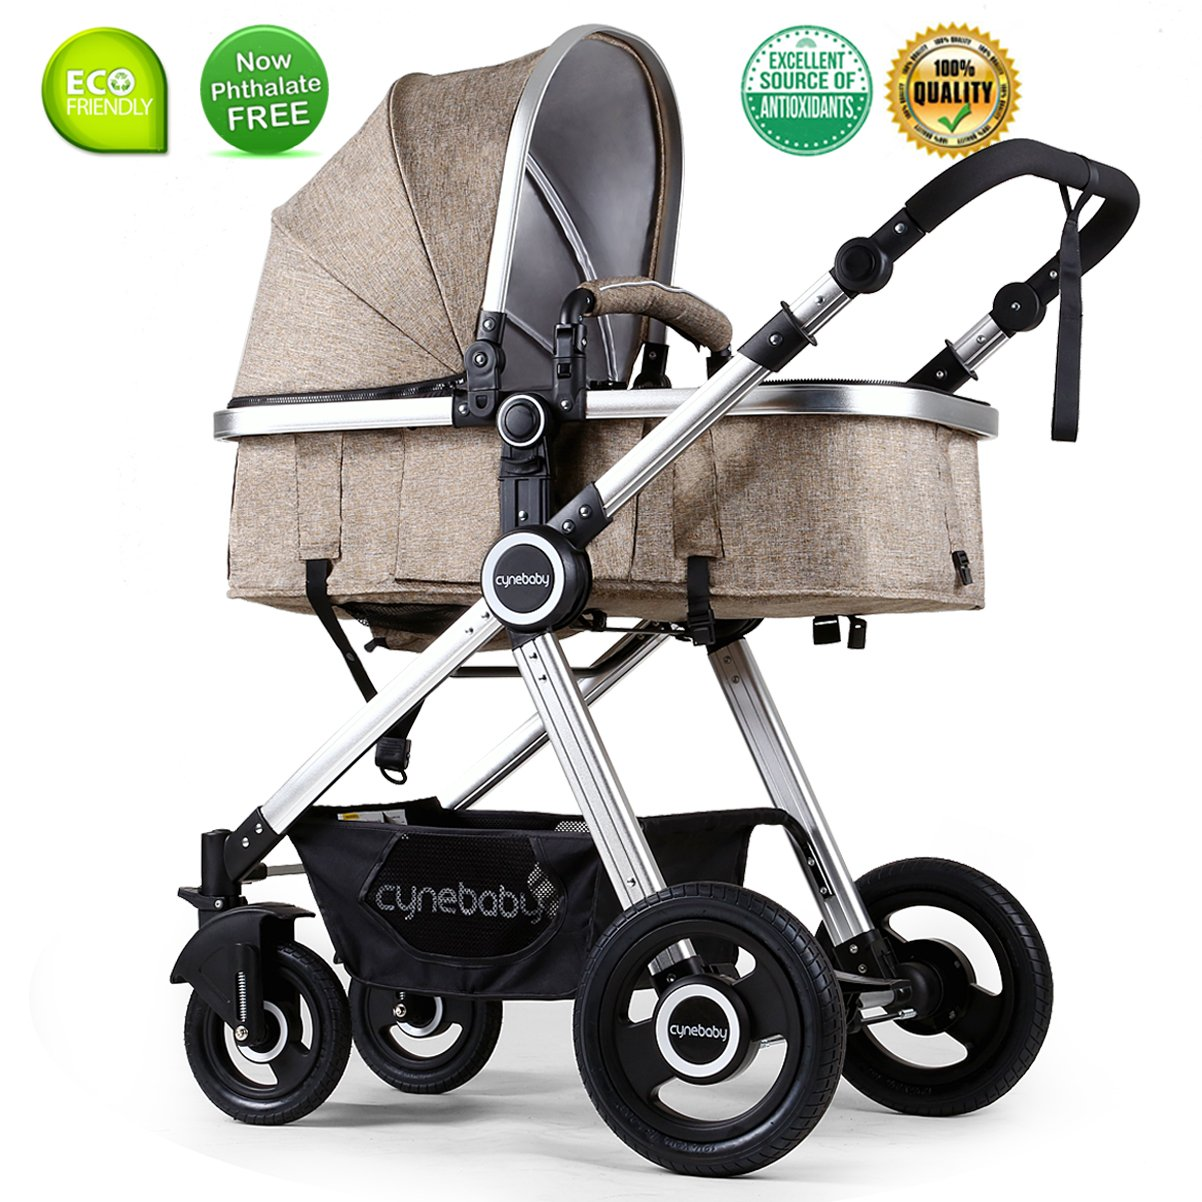 Infant Toddler Stroller Folding Convertible Carriage Infant Anti-Shock High View Luxury Baby Stroller Newborn Pram Stroller Pushchair Stroller for Babies(Light Camel)